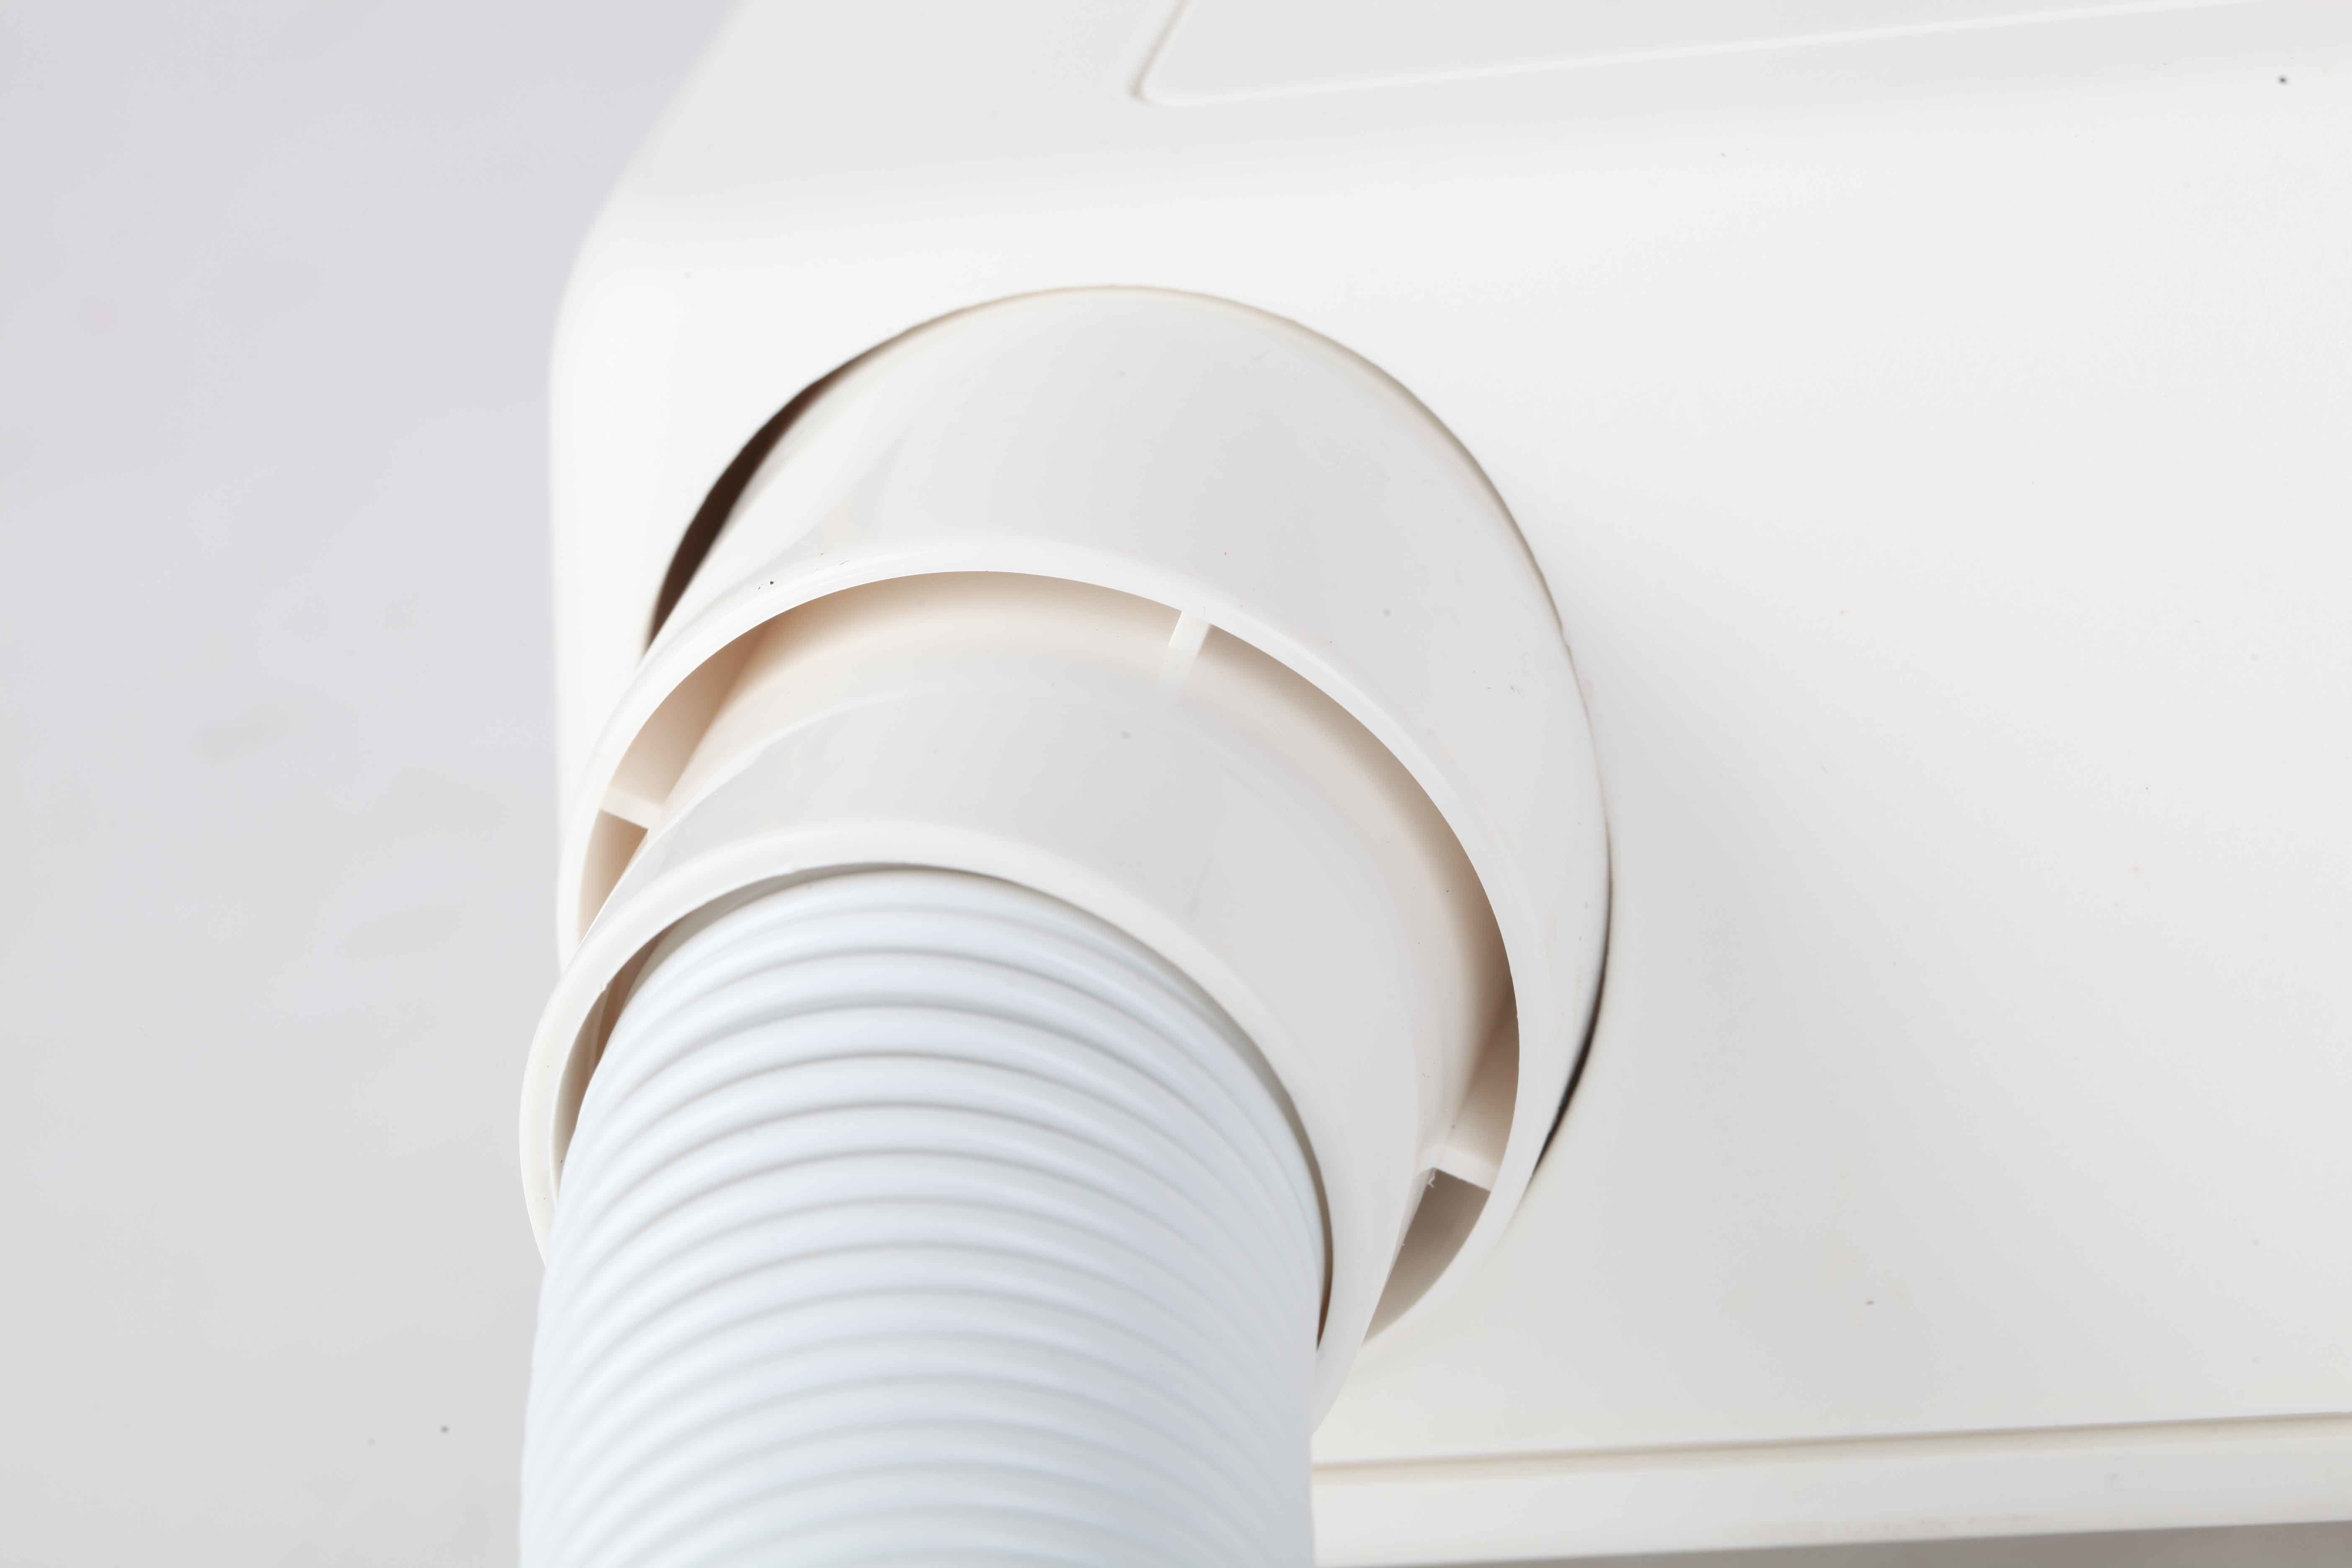 Other Home Appliance Parts Type Wall-Mounted Electrical ABS White Body/ Skin Hair Dryer